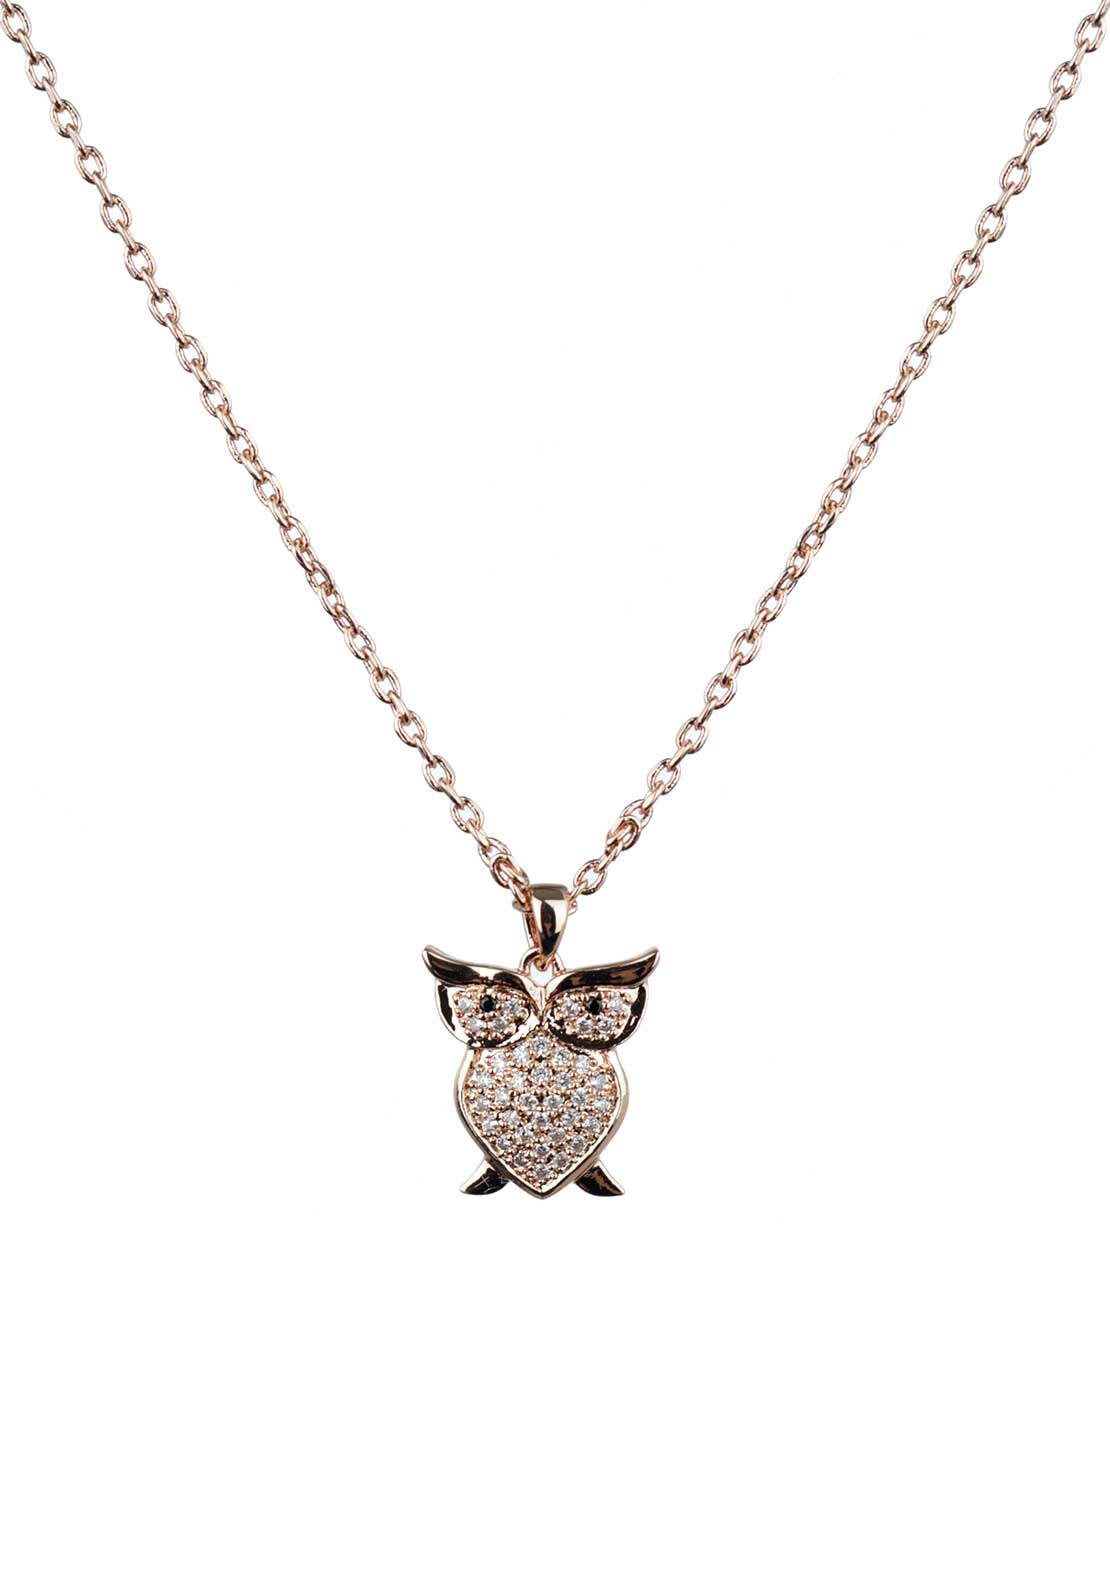 Absolute Jewellery Girls Pave Studded Owl Pendant Necklace, Rose Gold